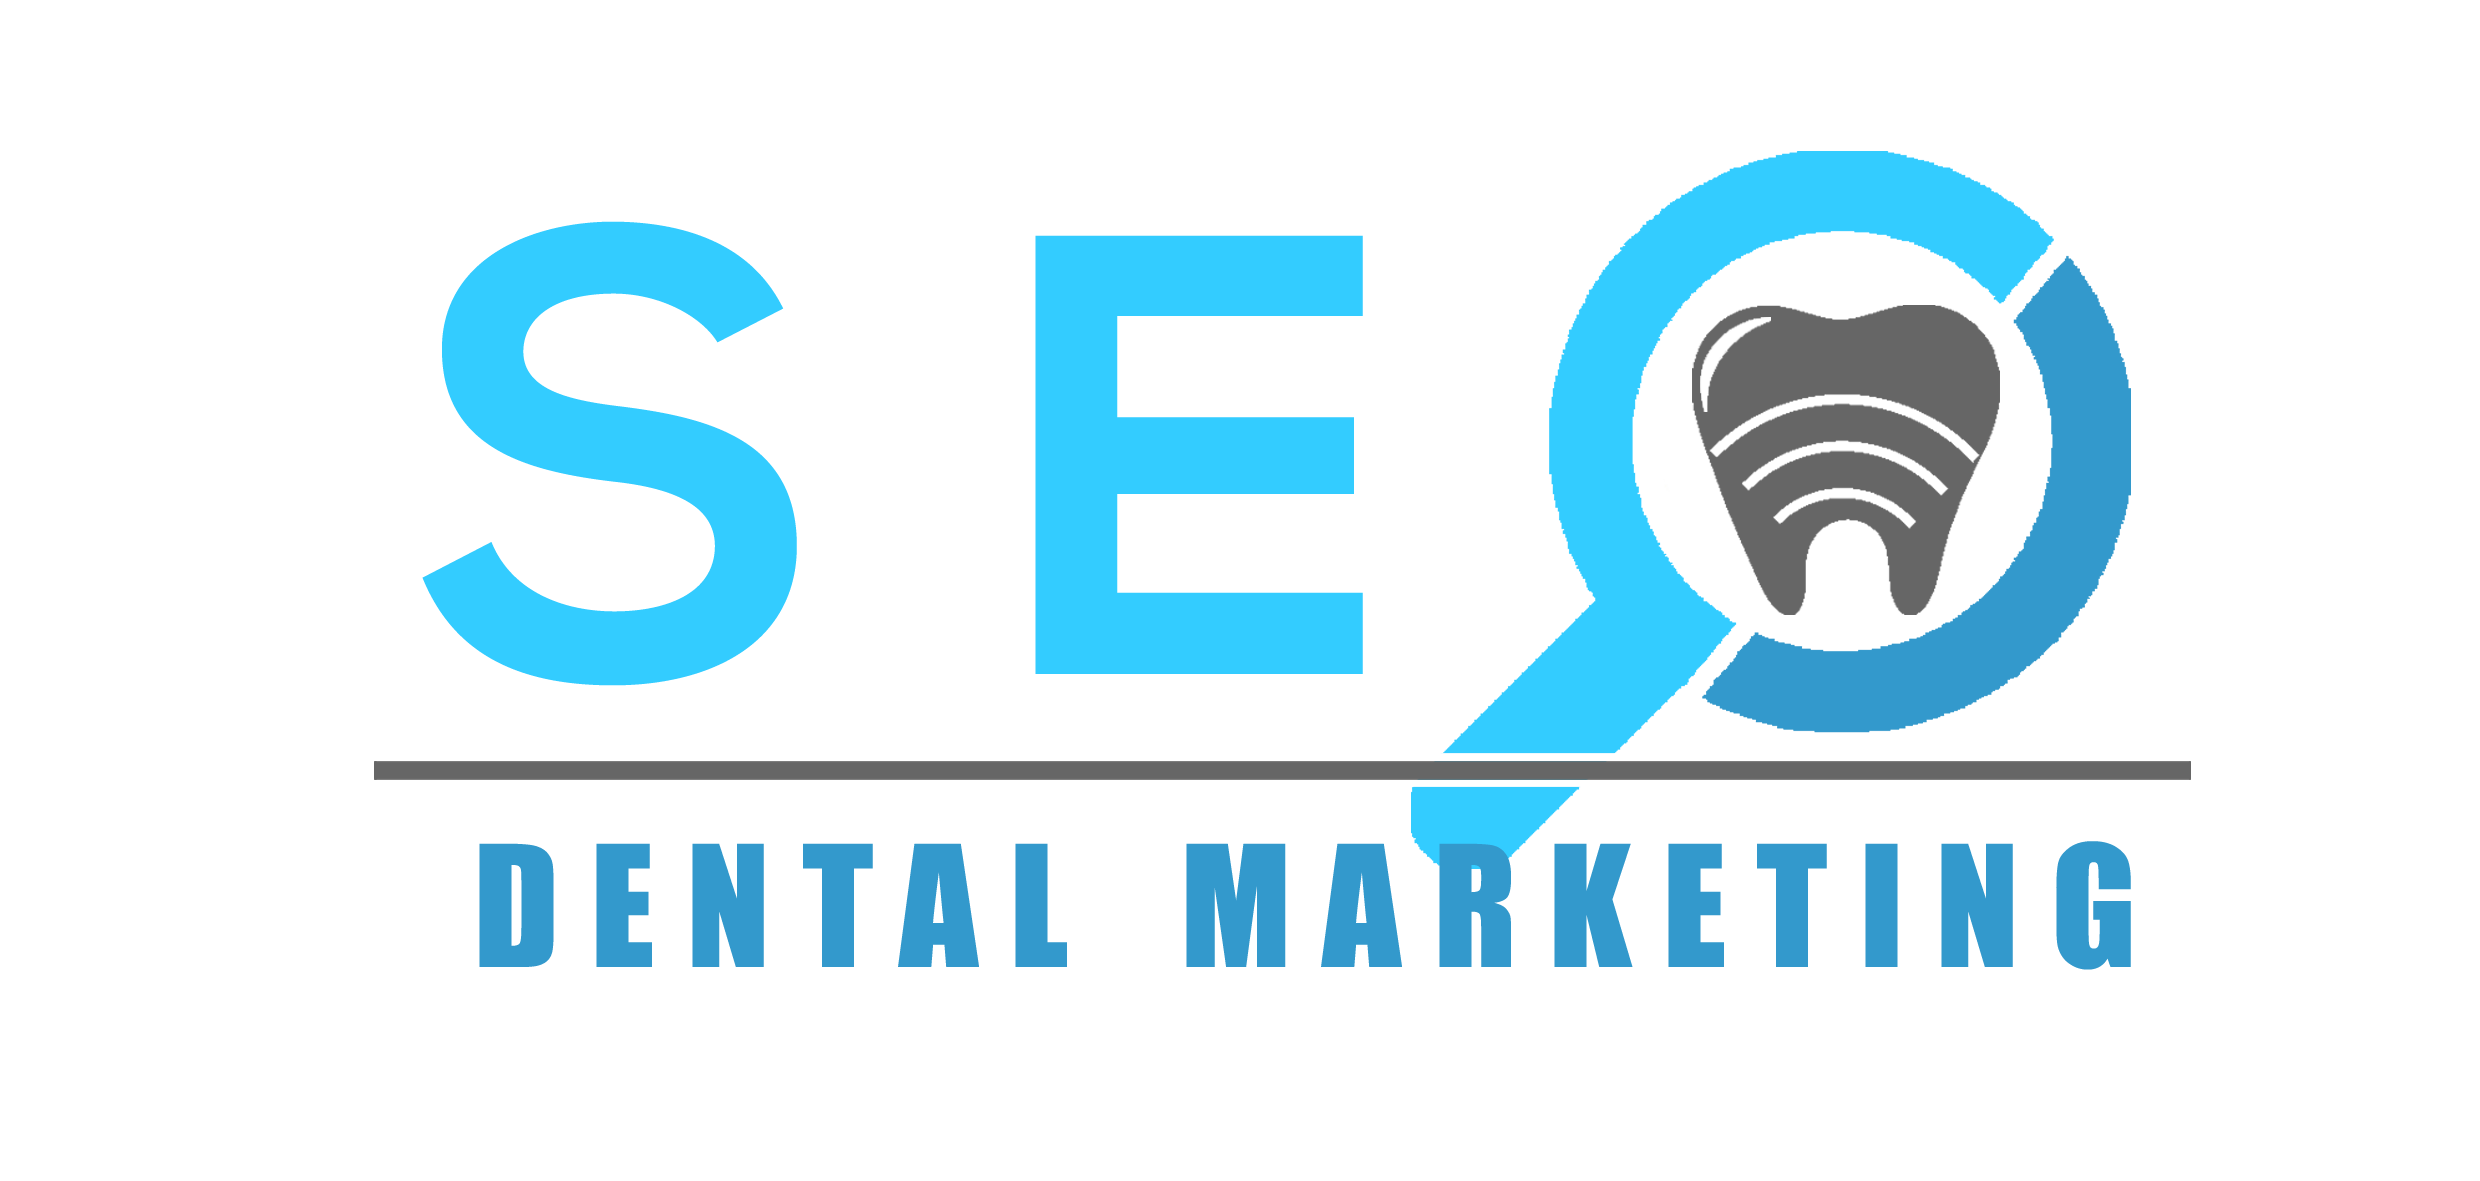 7 Things About Marketing Every Dental Practice Manager Should Know